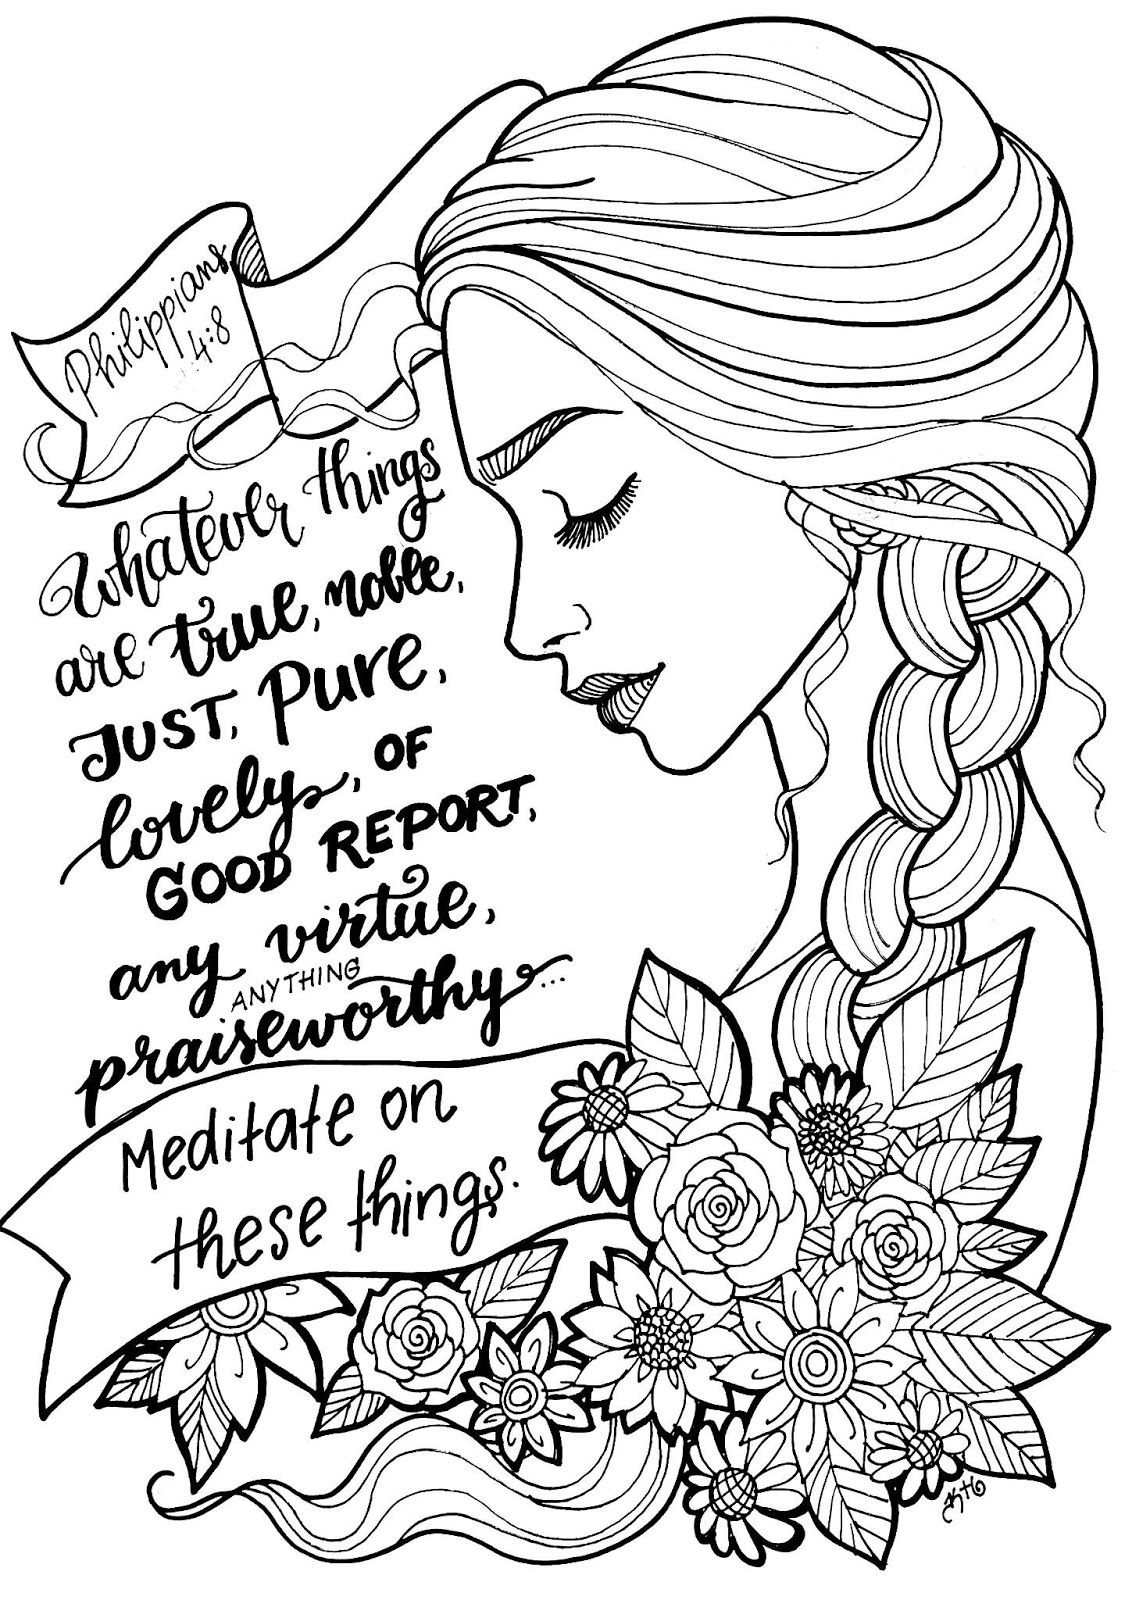 Free coloring page! Beautifully illustrated Bible verse